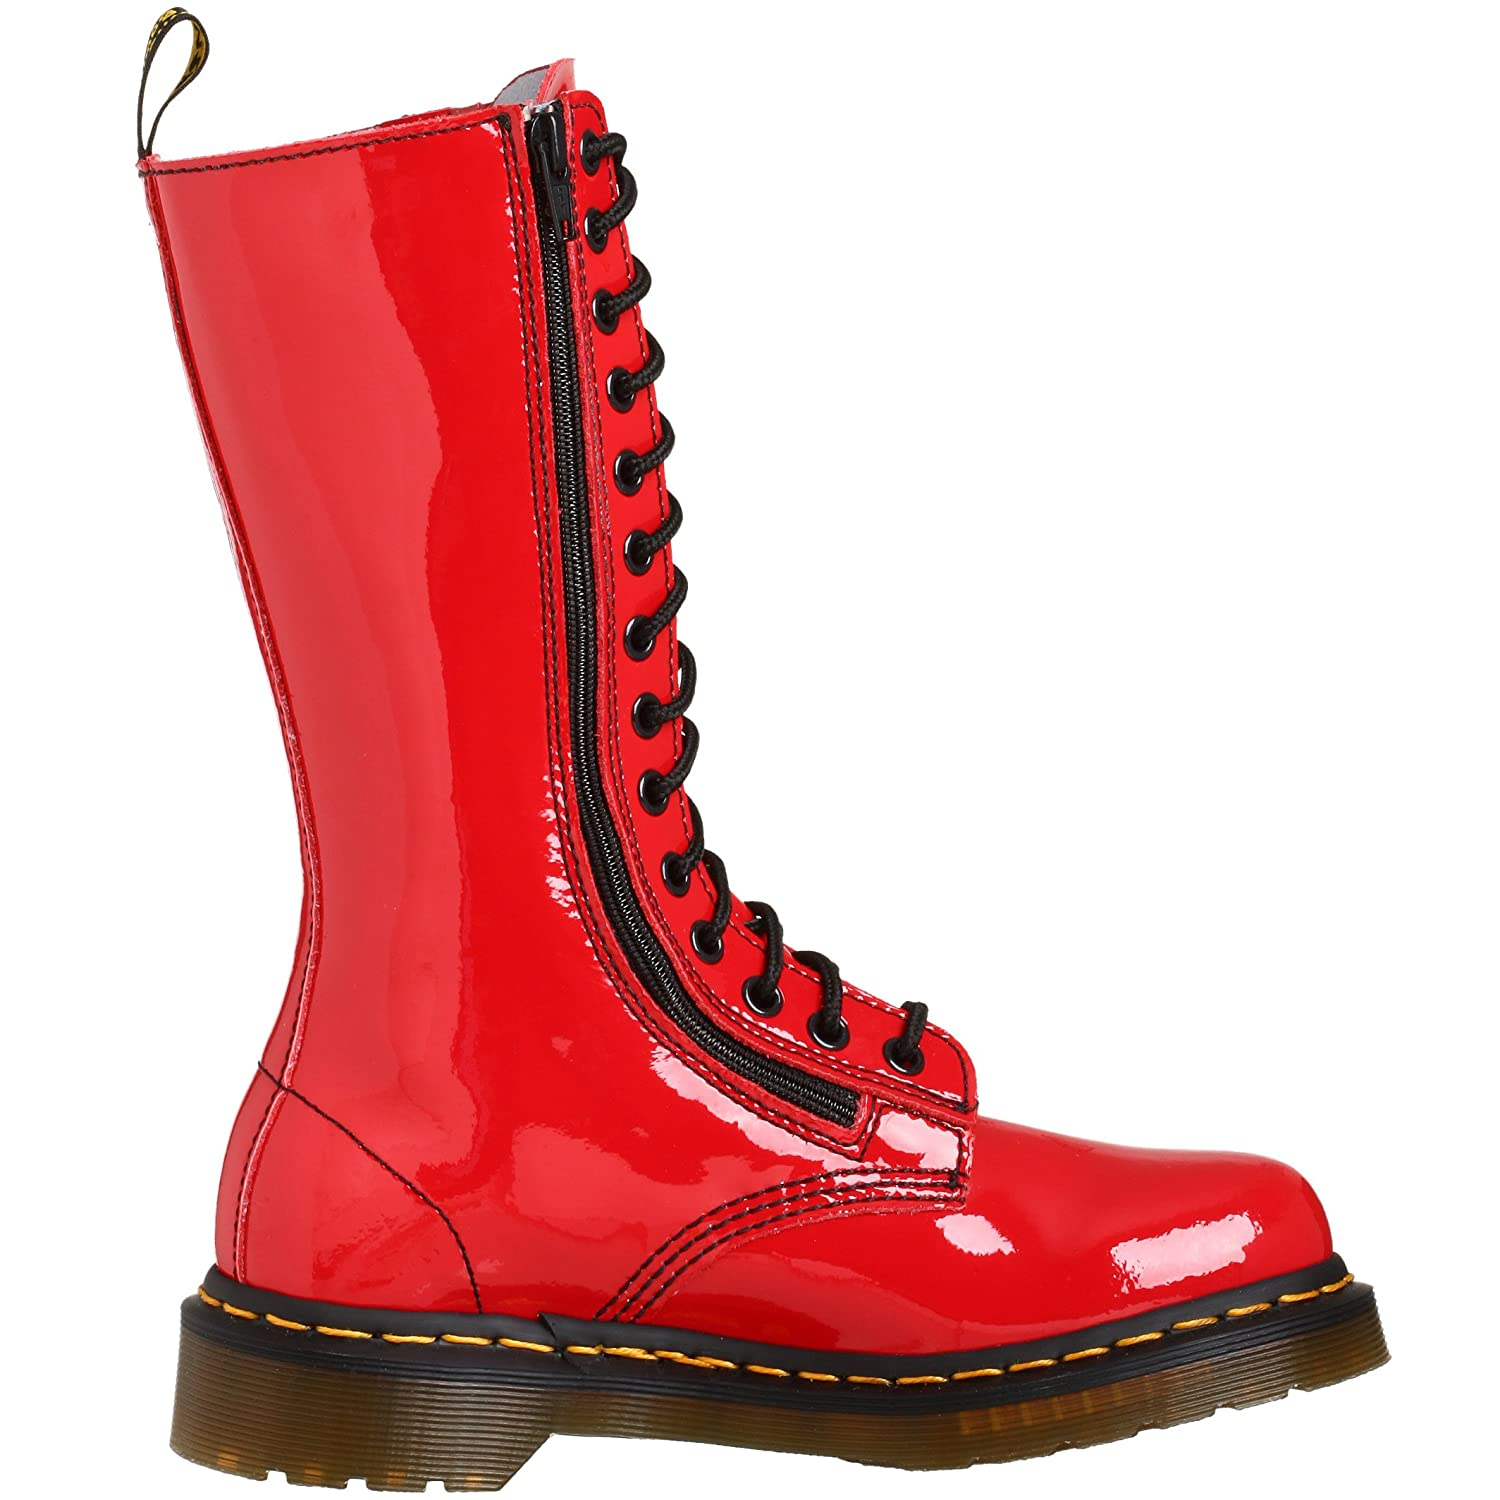 9733 LamperBoots W Rouge DrMartens Patent Mixte Adulte n0Nwm8yOPv